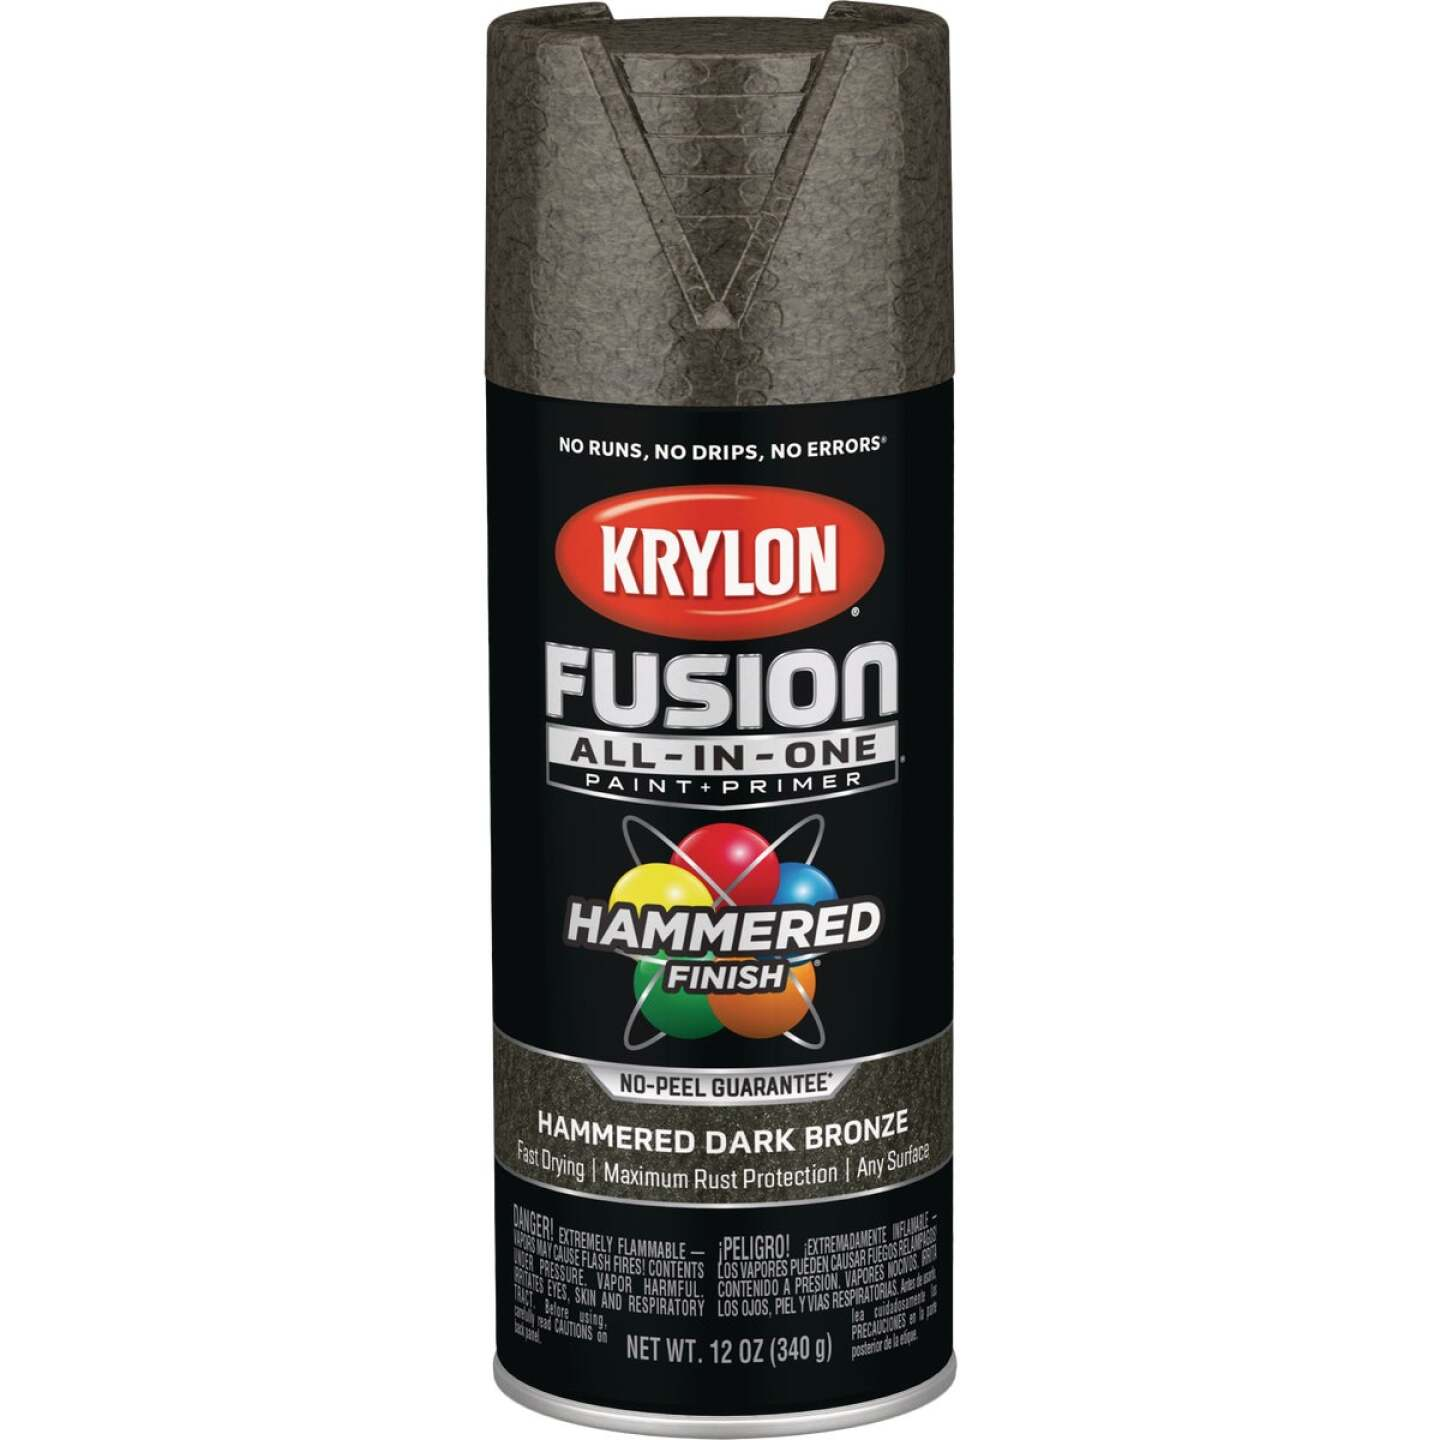 Krylon Fusion All-In-One Hammered Spray Paint & Primer, Dark Bronze Image 1